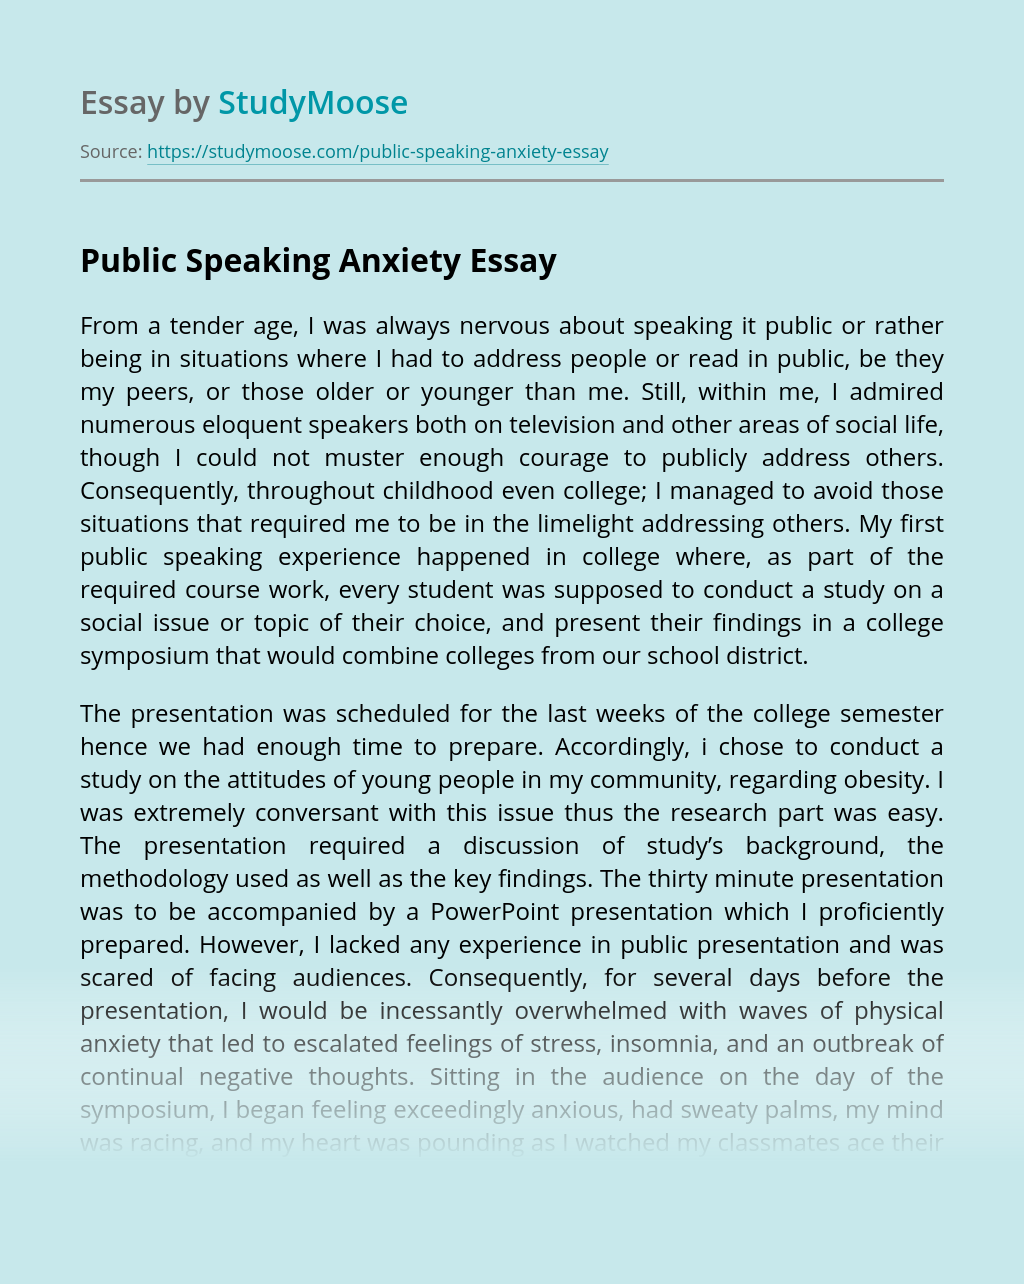 Public Speaking Anxiety